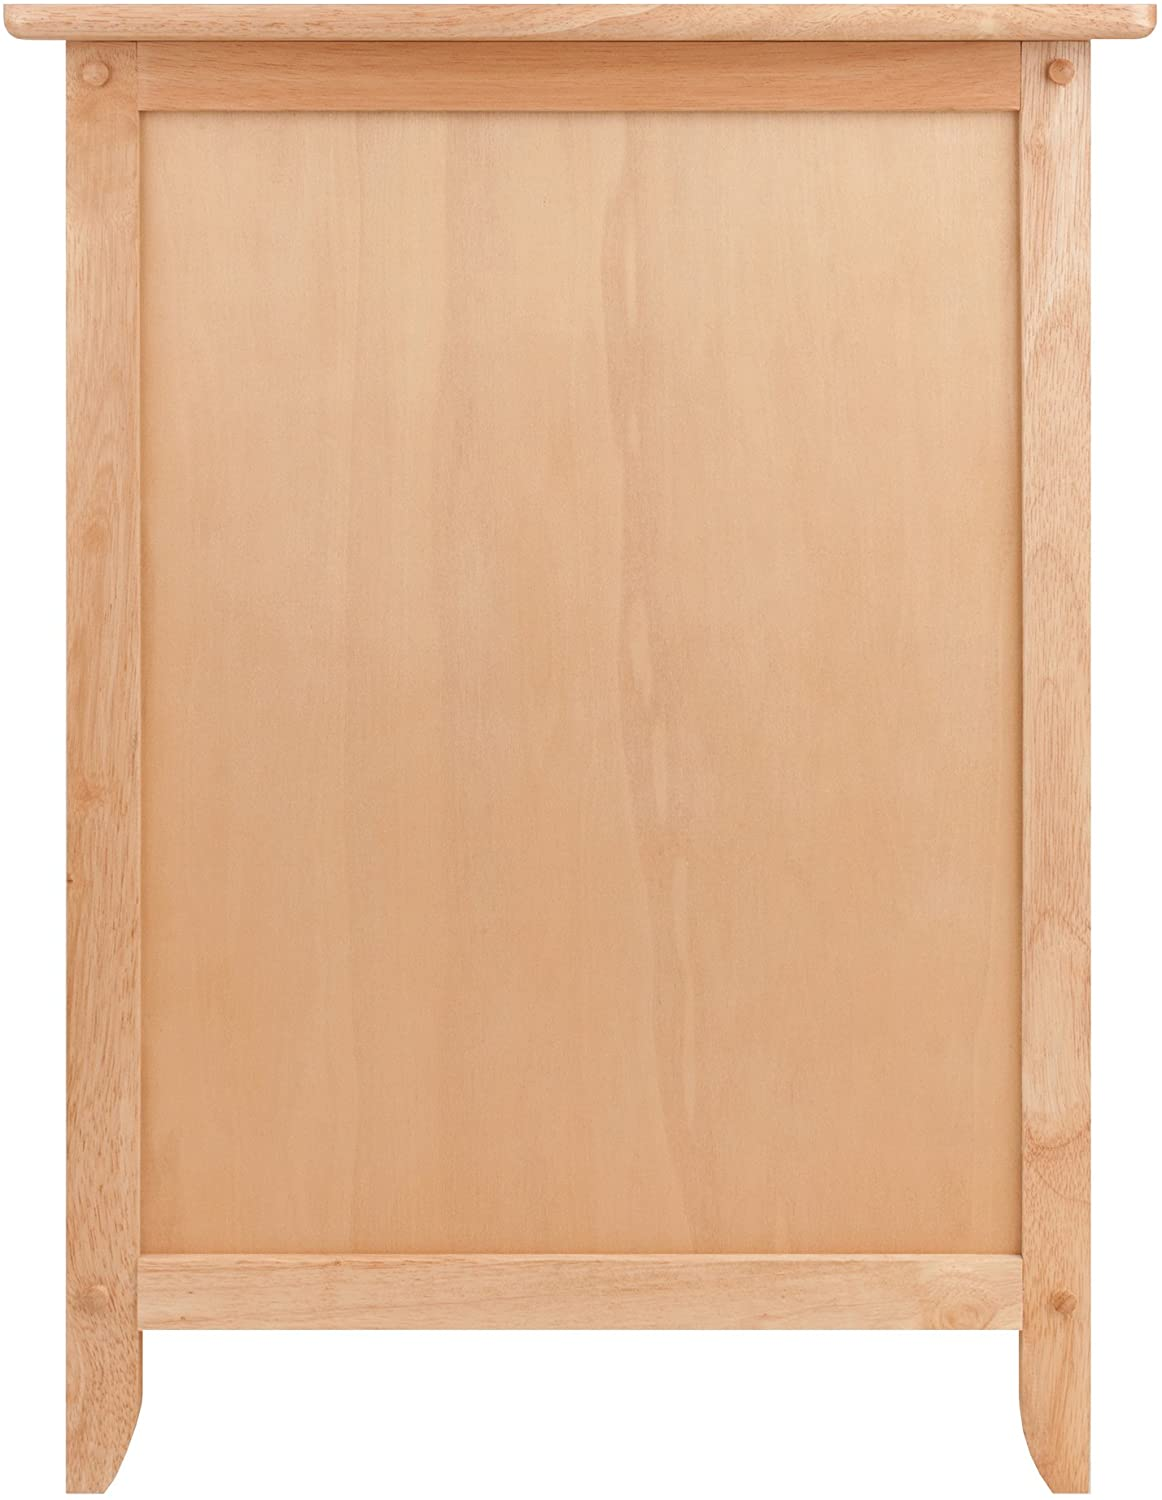 Natural Winsome Madera Madera Final//Accent Mesa Madera 18.9 Inches